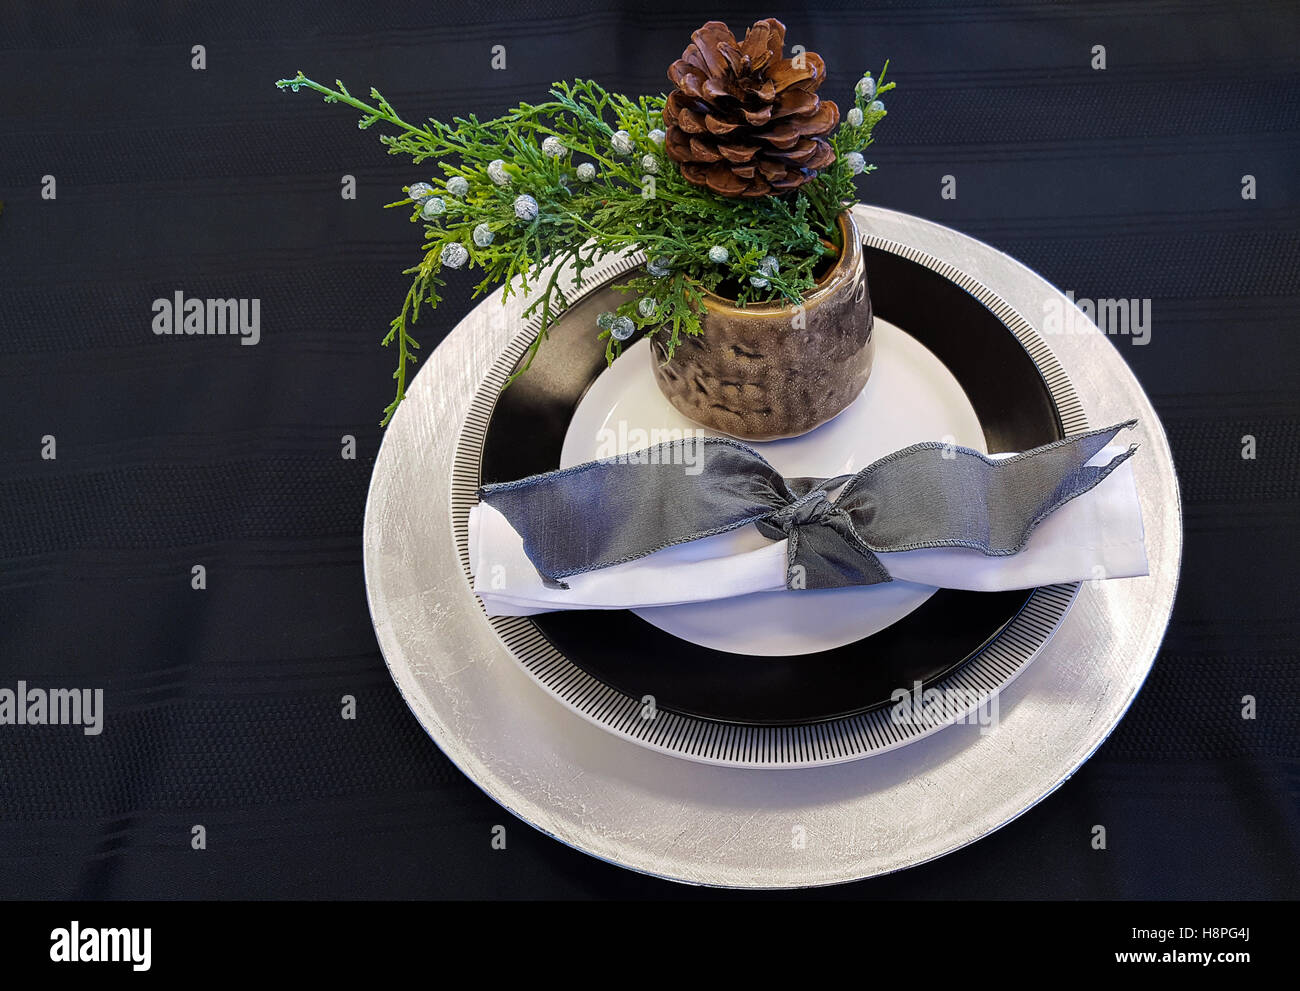 Evergreen In Cup With Christmas Plate Setting On Black Tablecloth Stock Photo Alamy